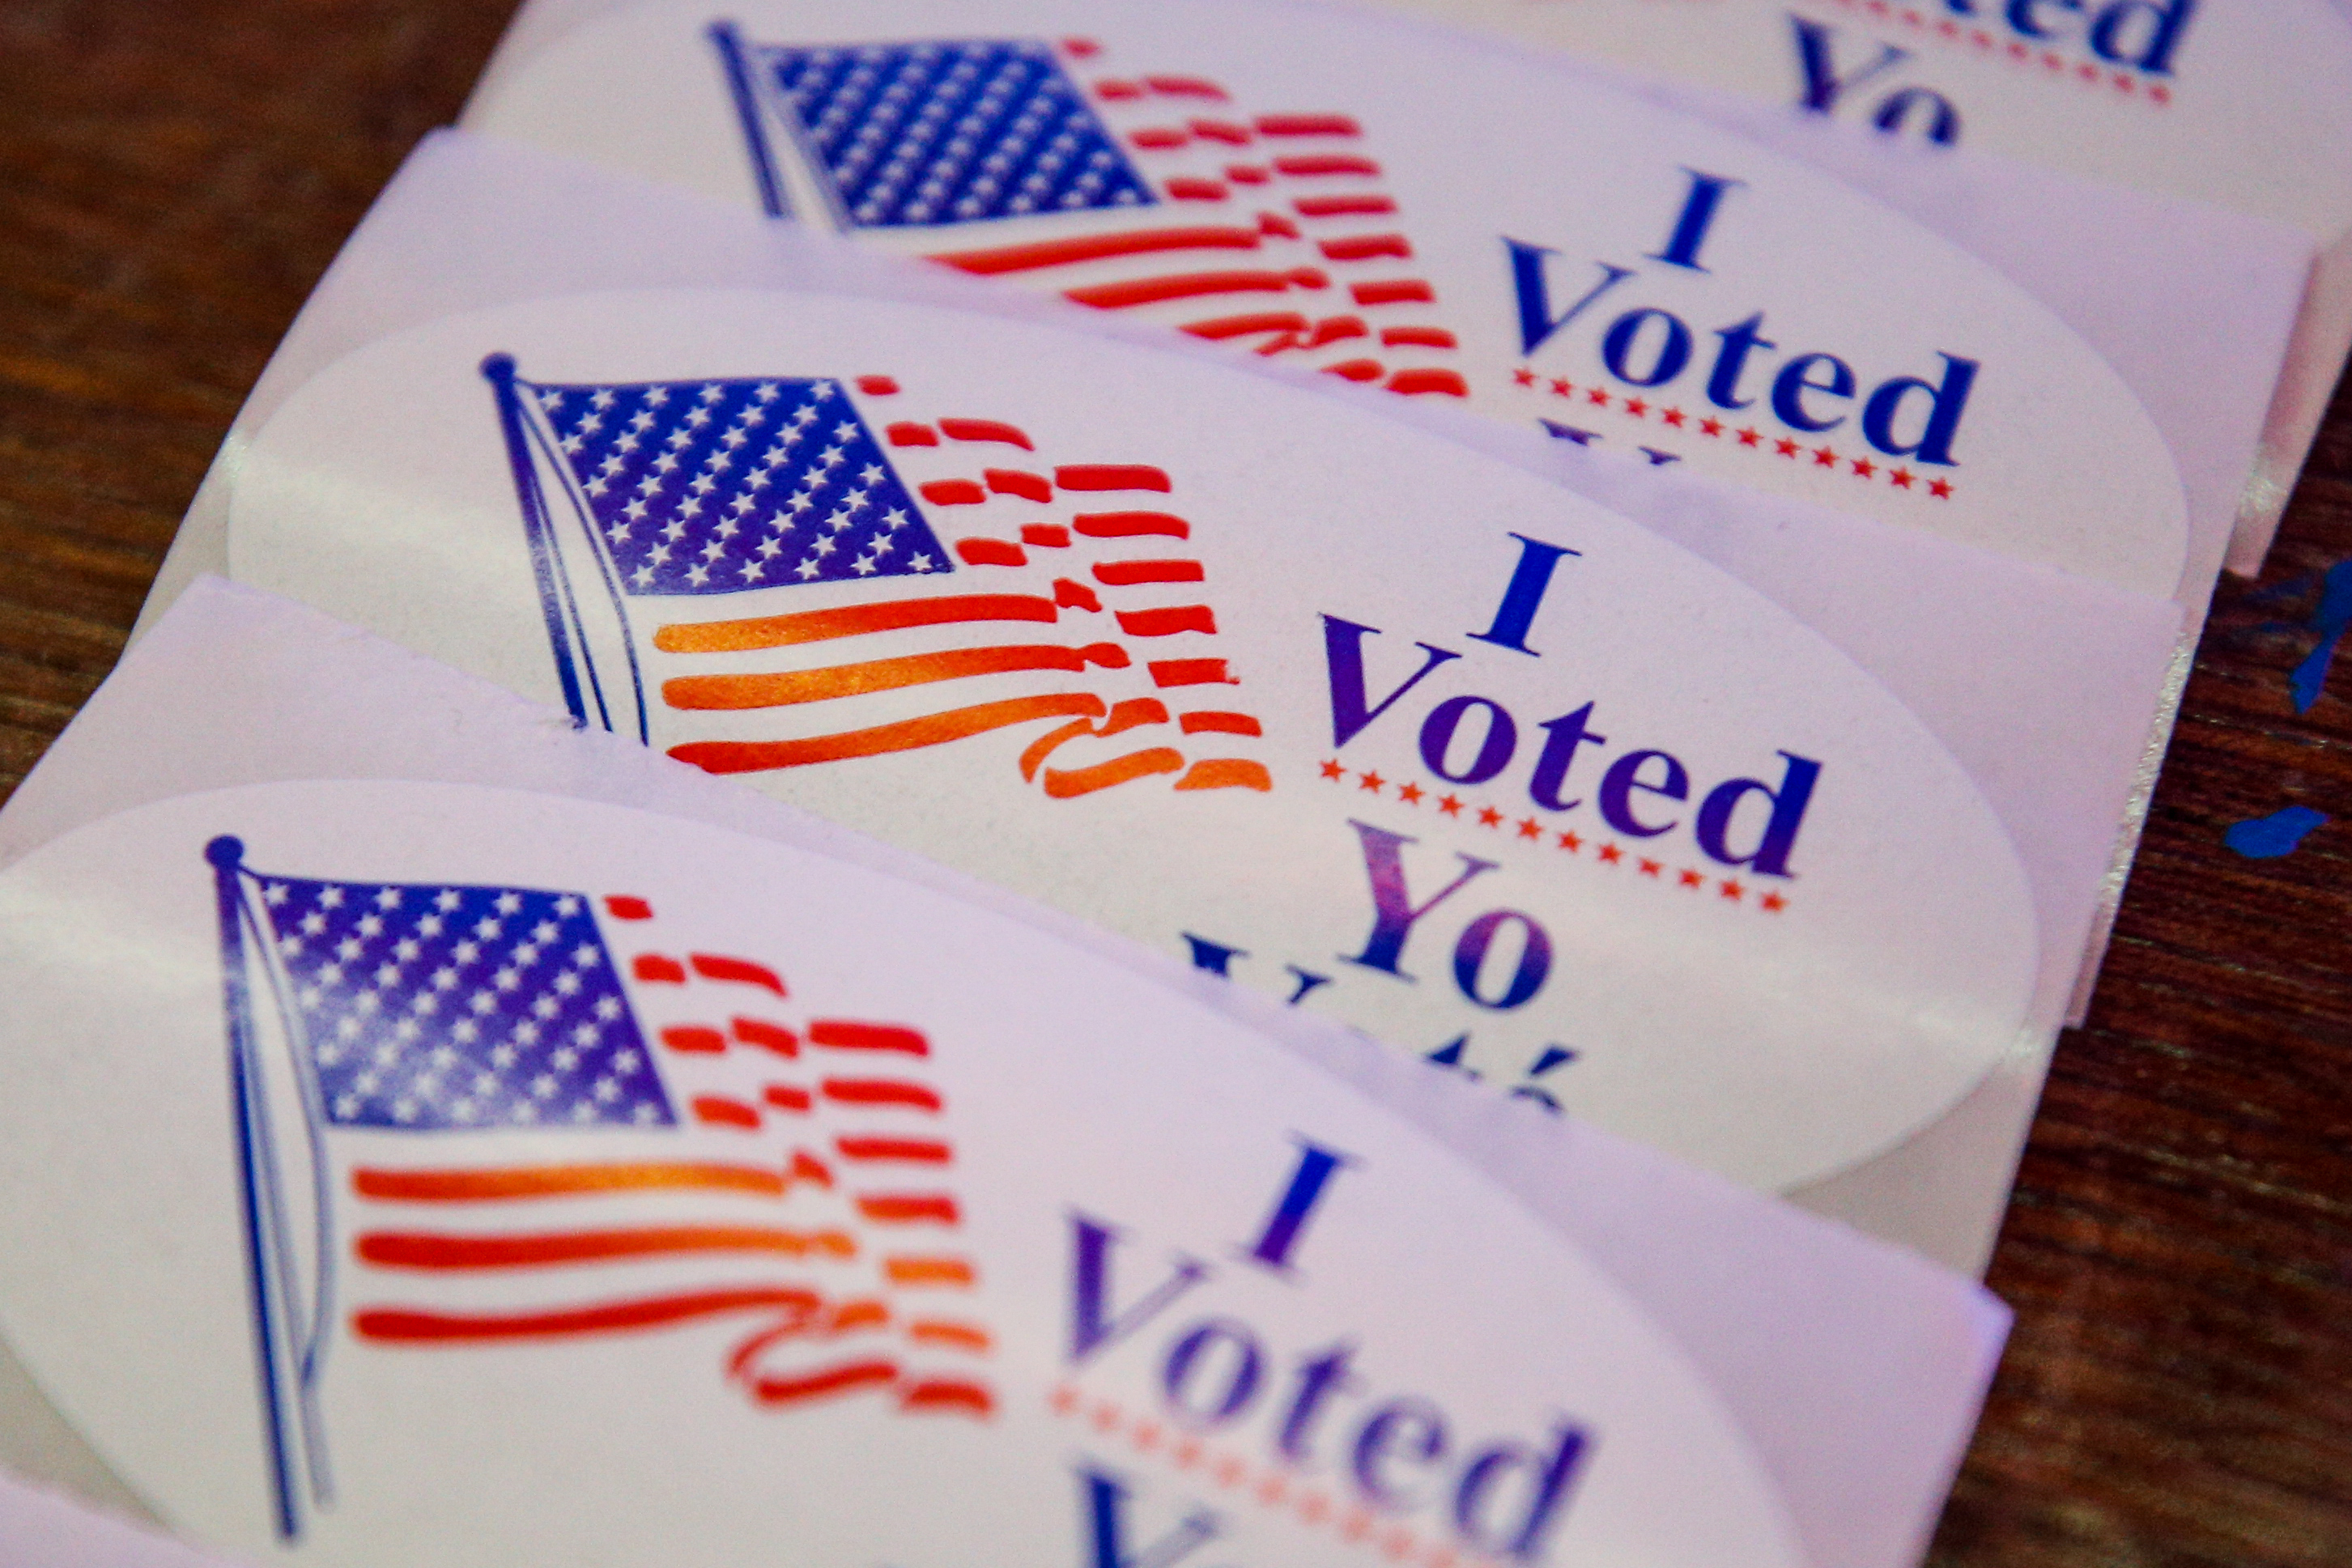 United States in run-up to 2020 elections